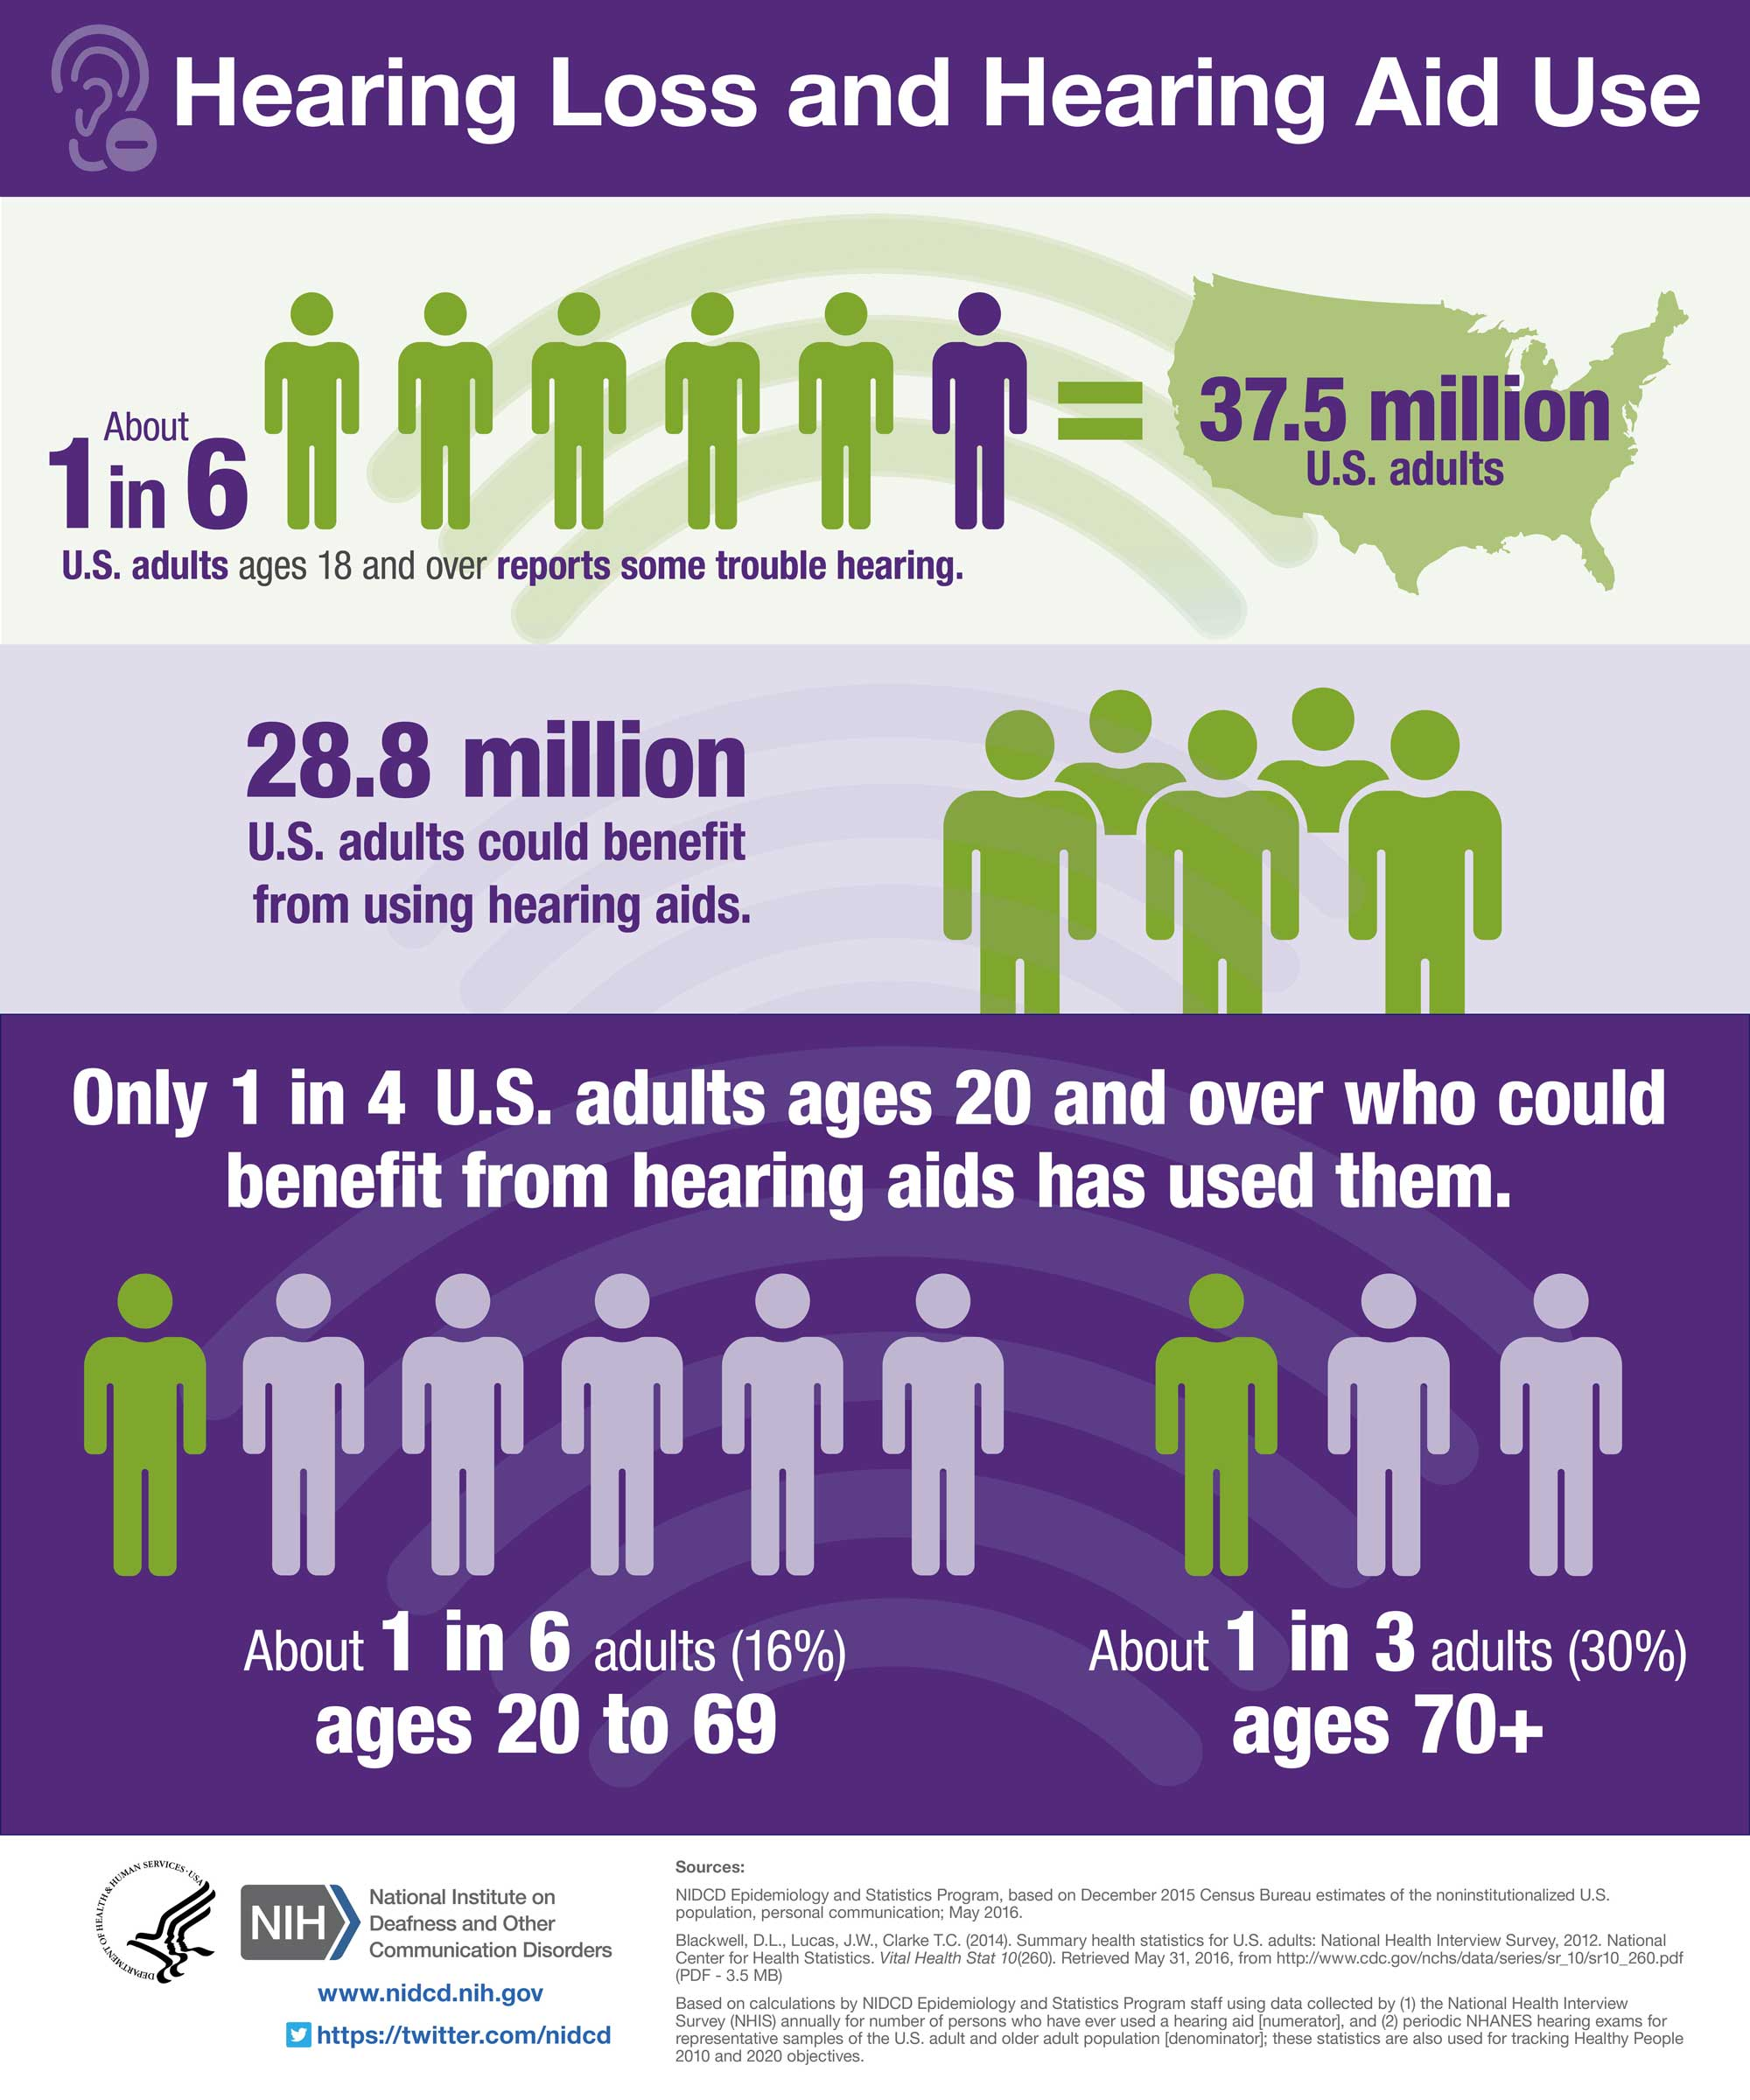 Hearing loss and hearing aid use info graphic